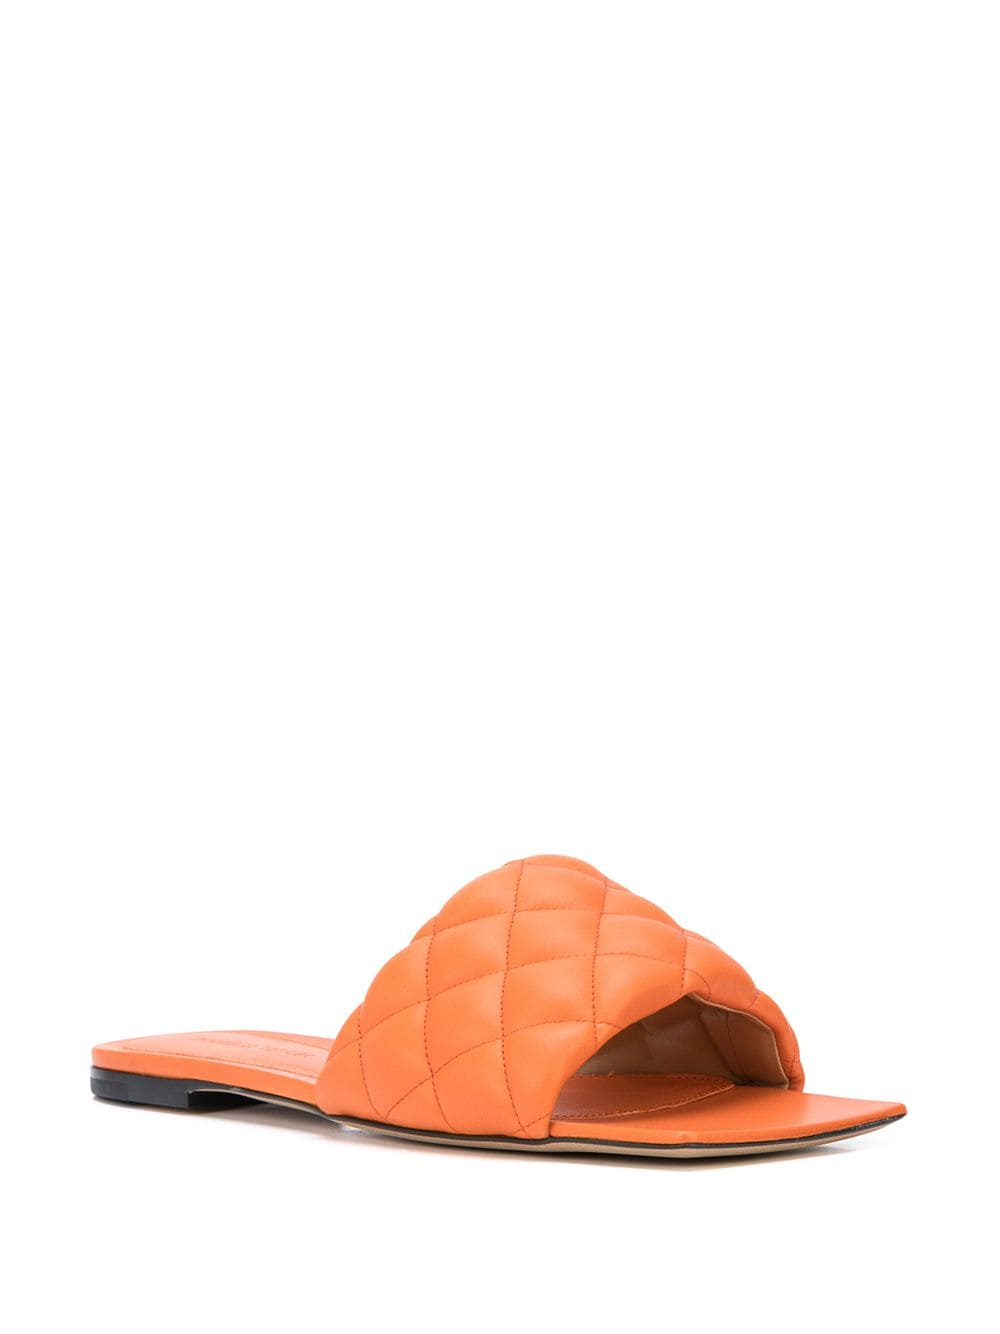 Padded Flat Sandals Coral 3/4